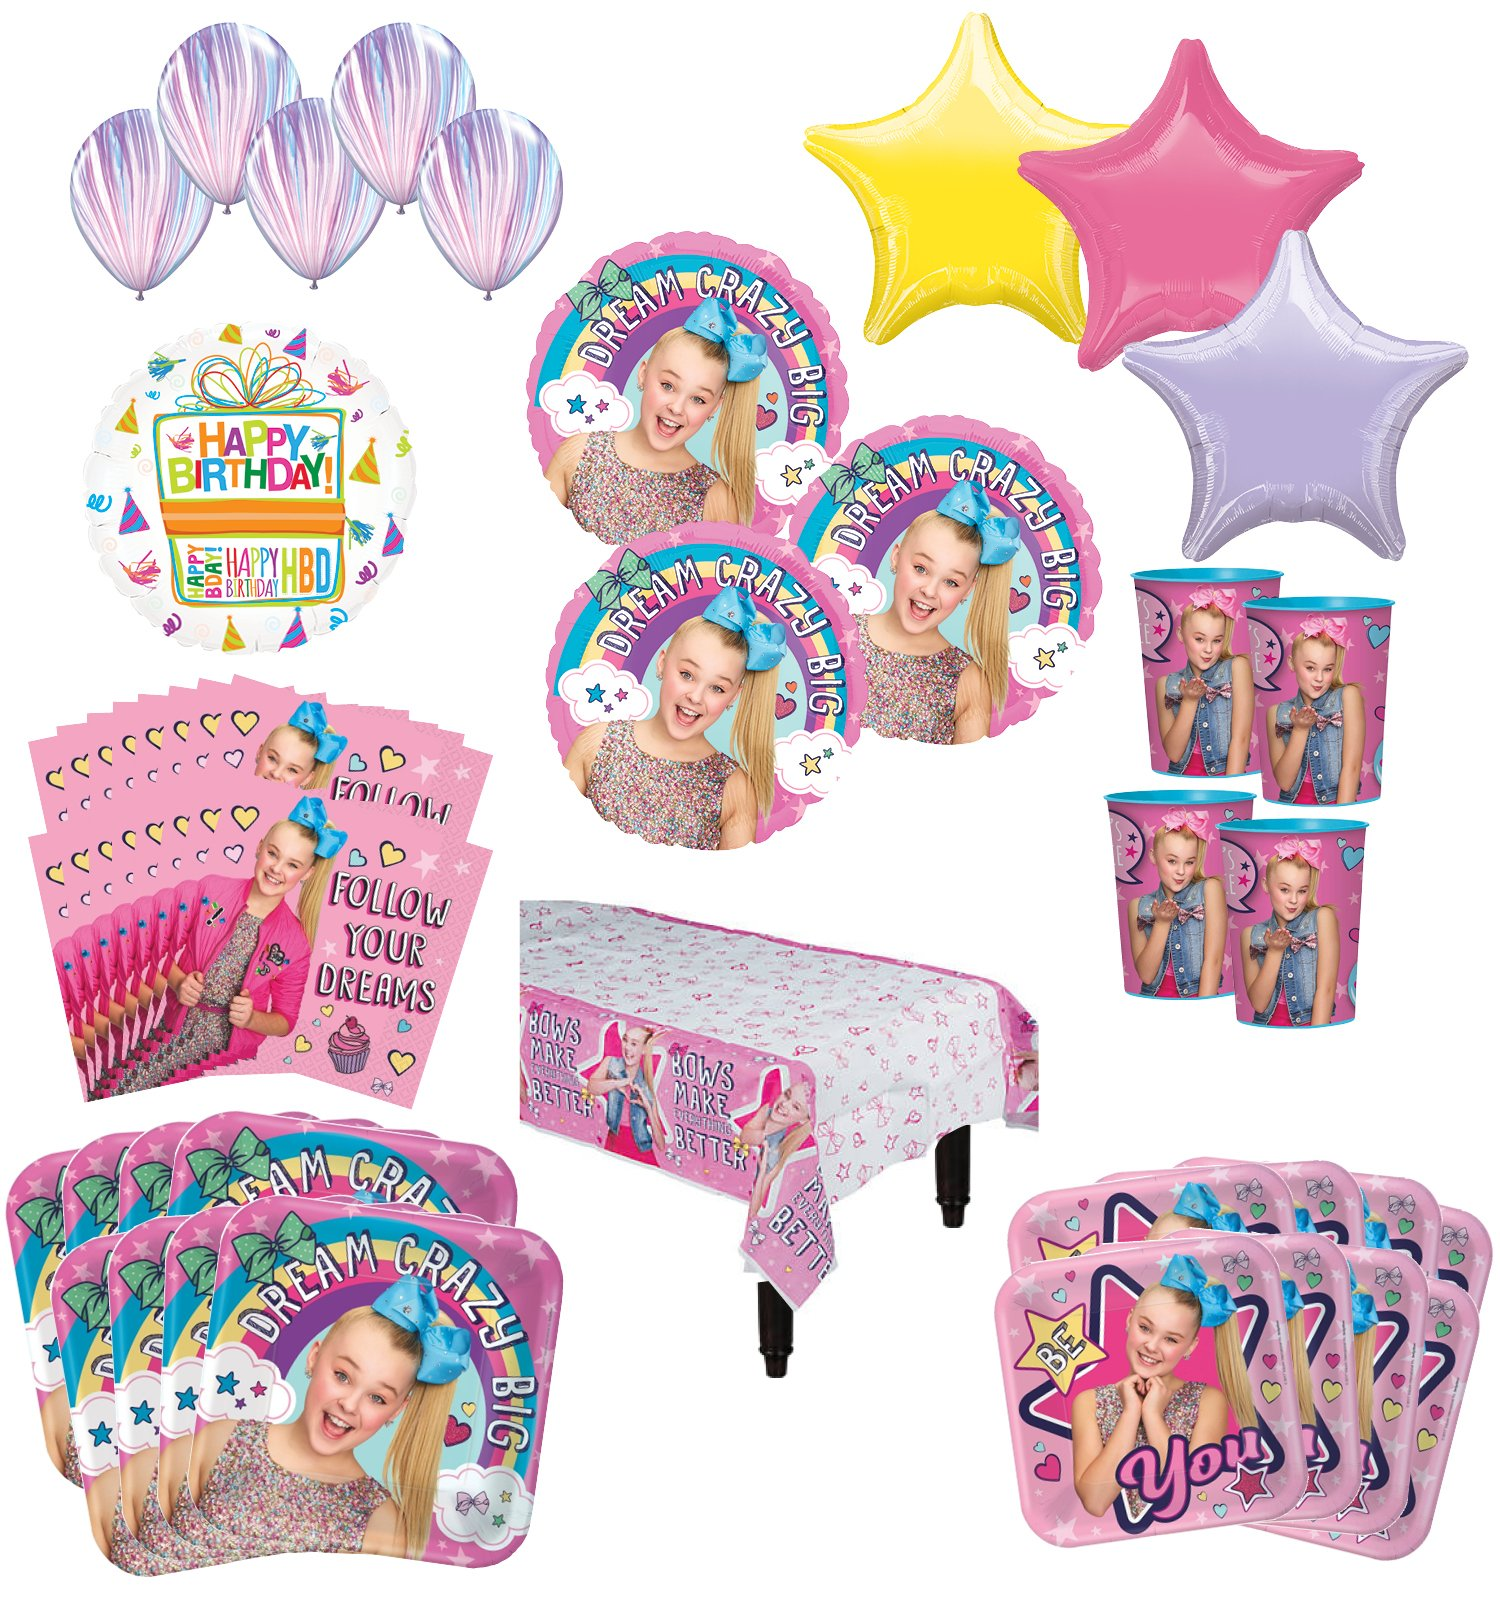 JoJo Siwa Birthday Party Supplies 8 Guest Kit and Balloon Bouquet Decorations